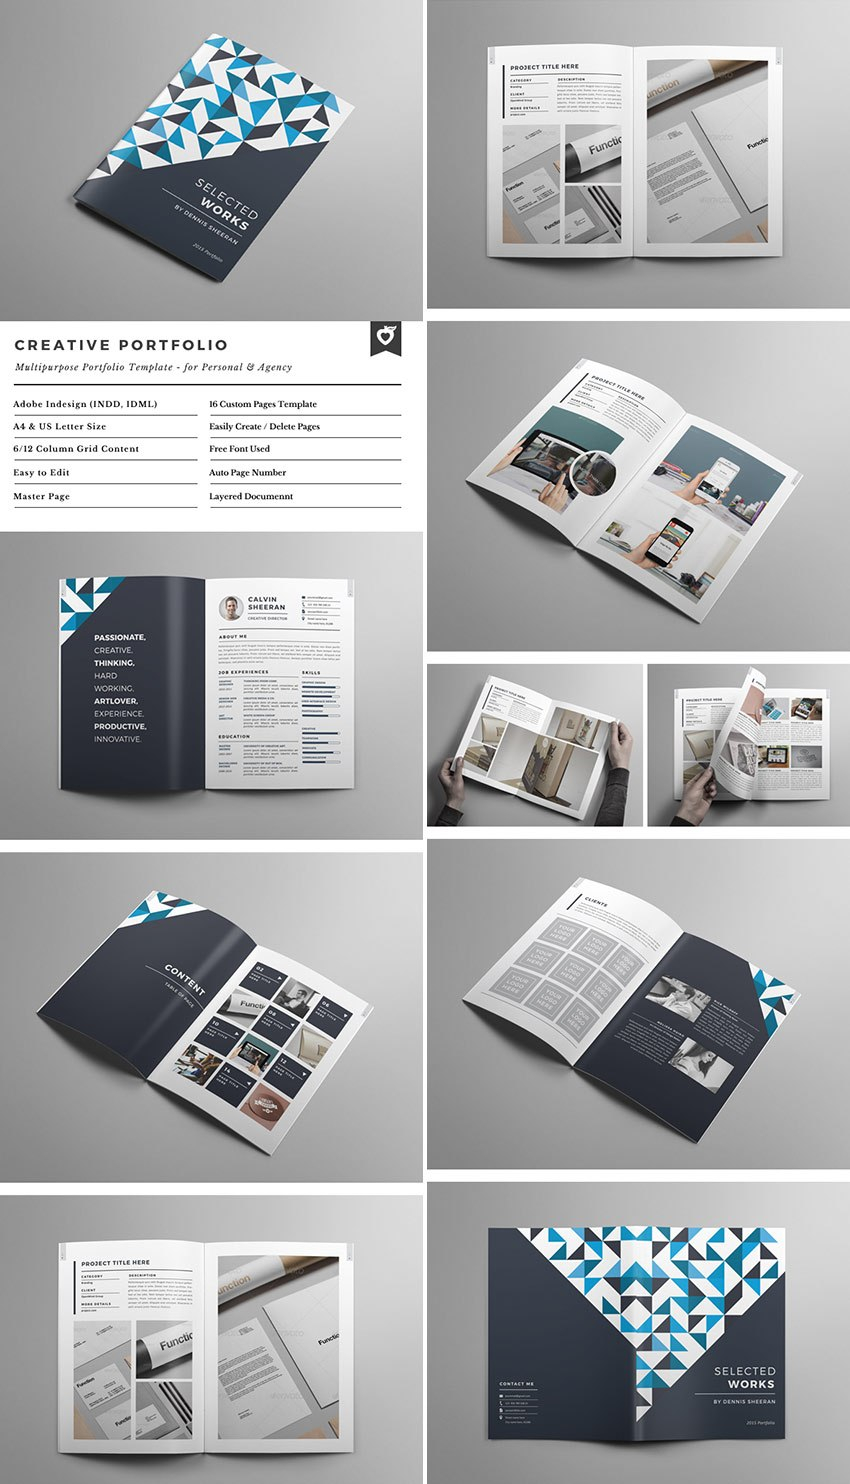 Best Indesign Brochure Templates  Creative Business Marketing In Brochure Templates Free Download Indesign